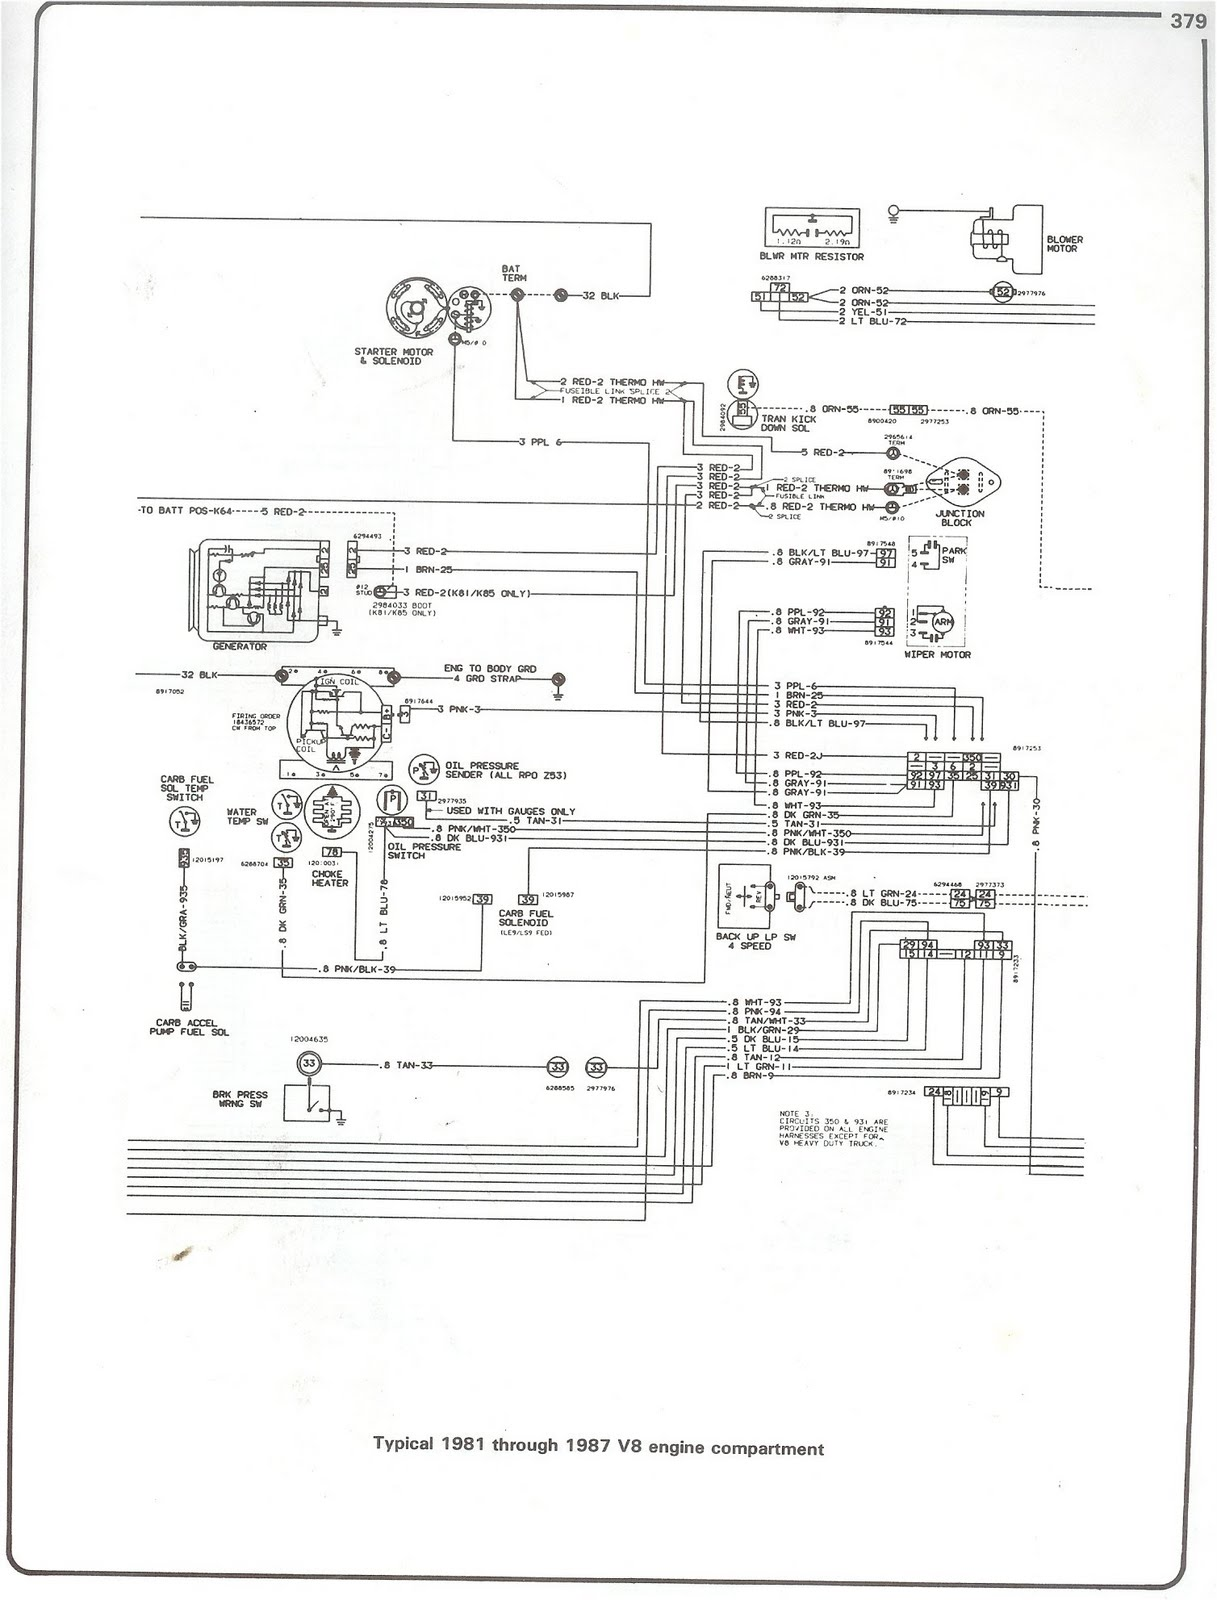 Free Auto Wiring Diagram: 1981-1987 Chevrolet V8 Truck Engine ...  Porsche Wiring Diagram on corvette schematics diagrams, porsche parts diagrams, banquet style meeting room set up diagrams, porsche transmission, fluid power diagrams, complete streets diagrams, porsche 996 diagrams, porsche engine, porsche 914 wiring harness, porsche blueprints,